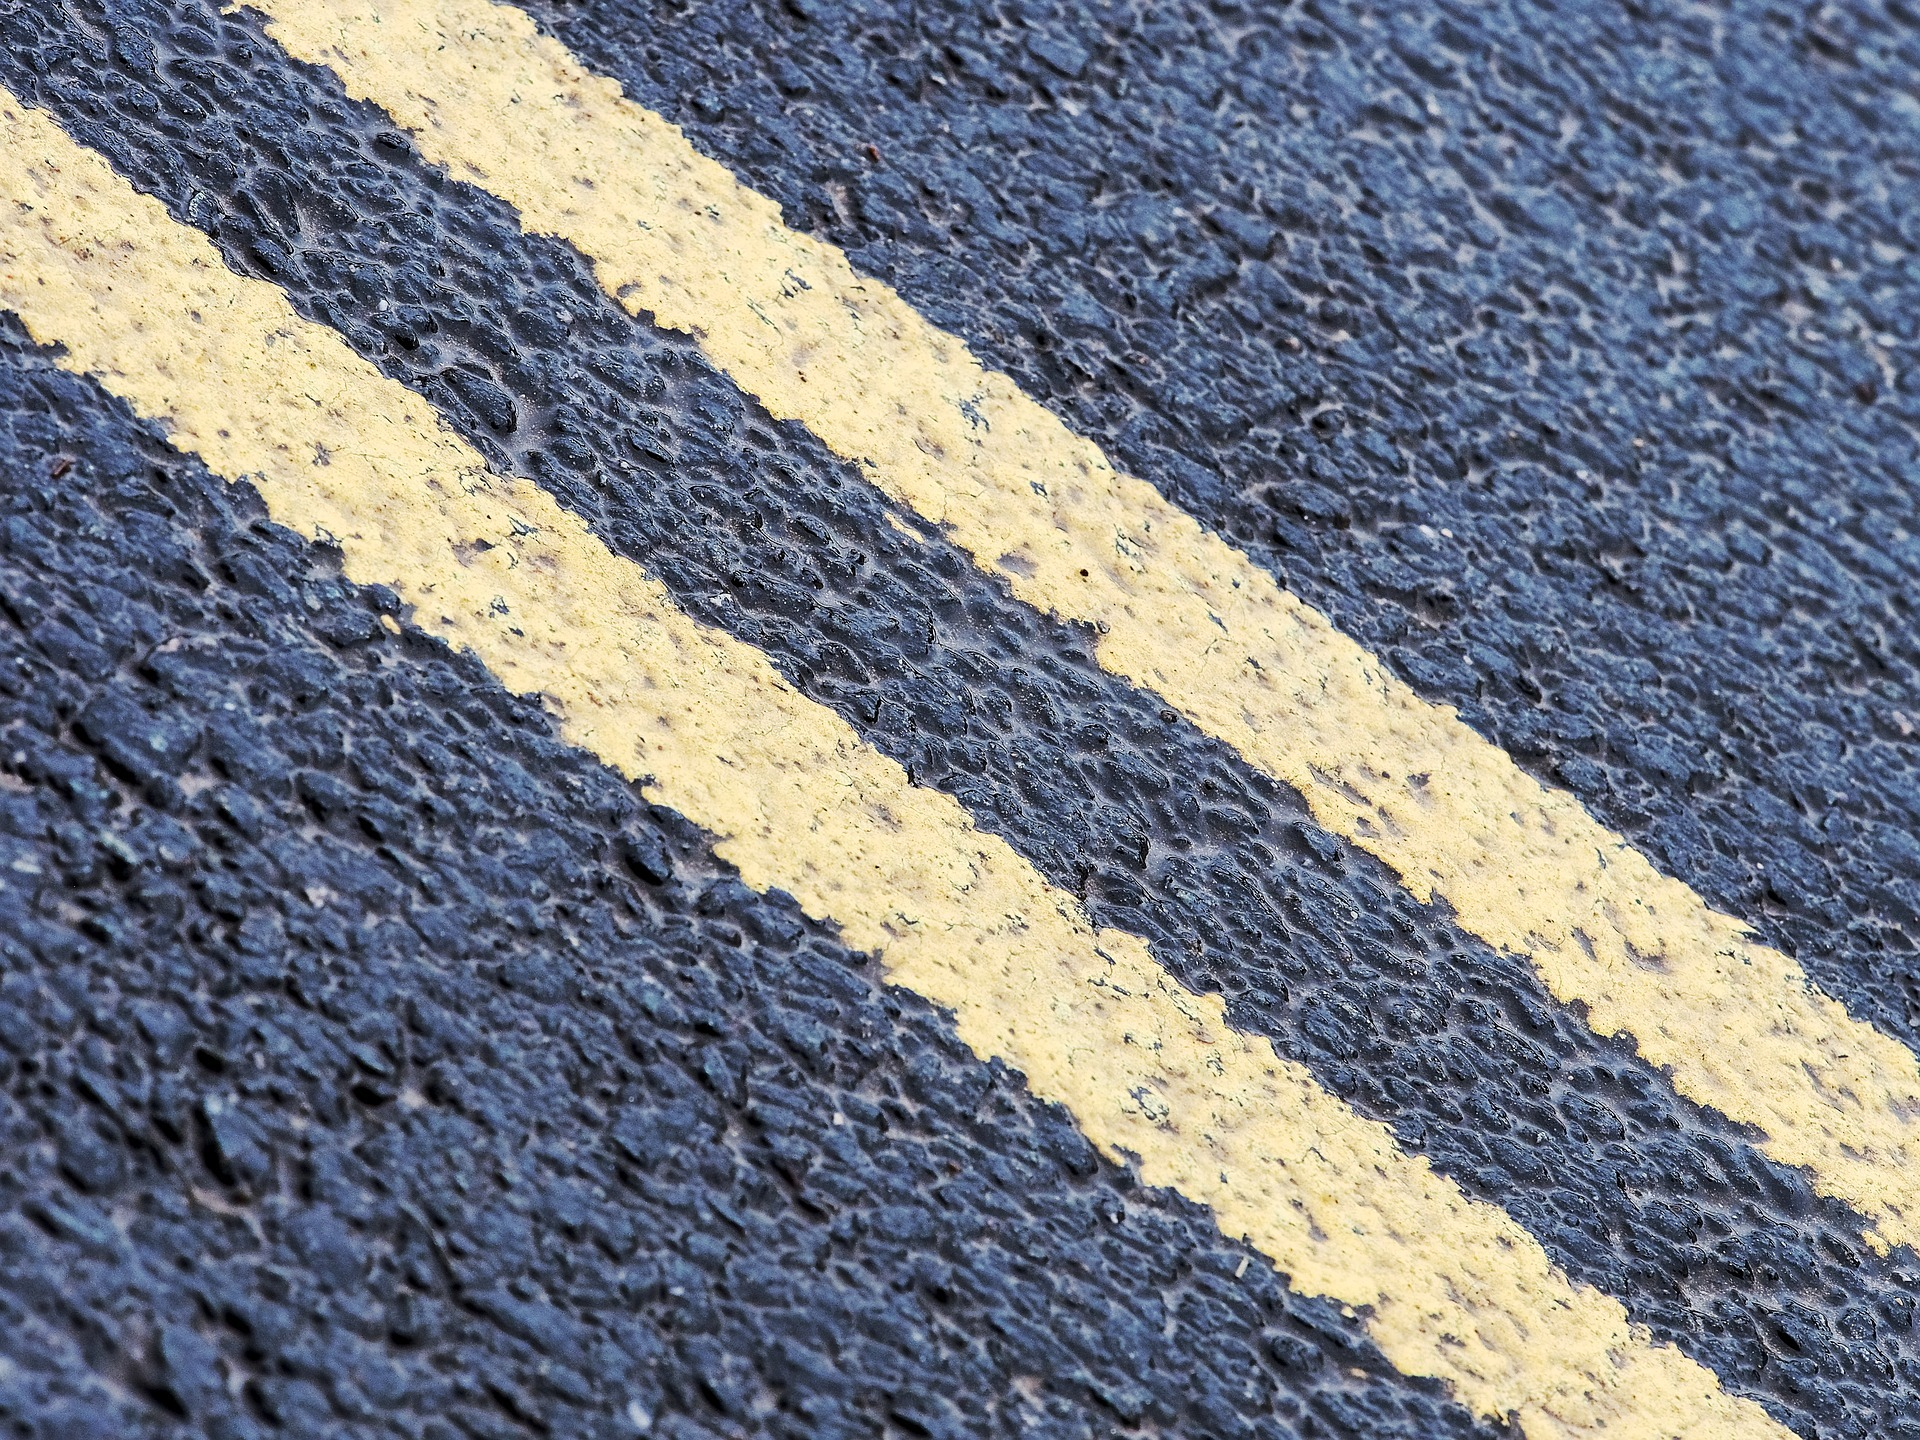 Stock image: Double-yellow lines